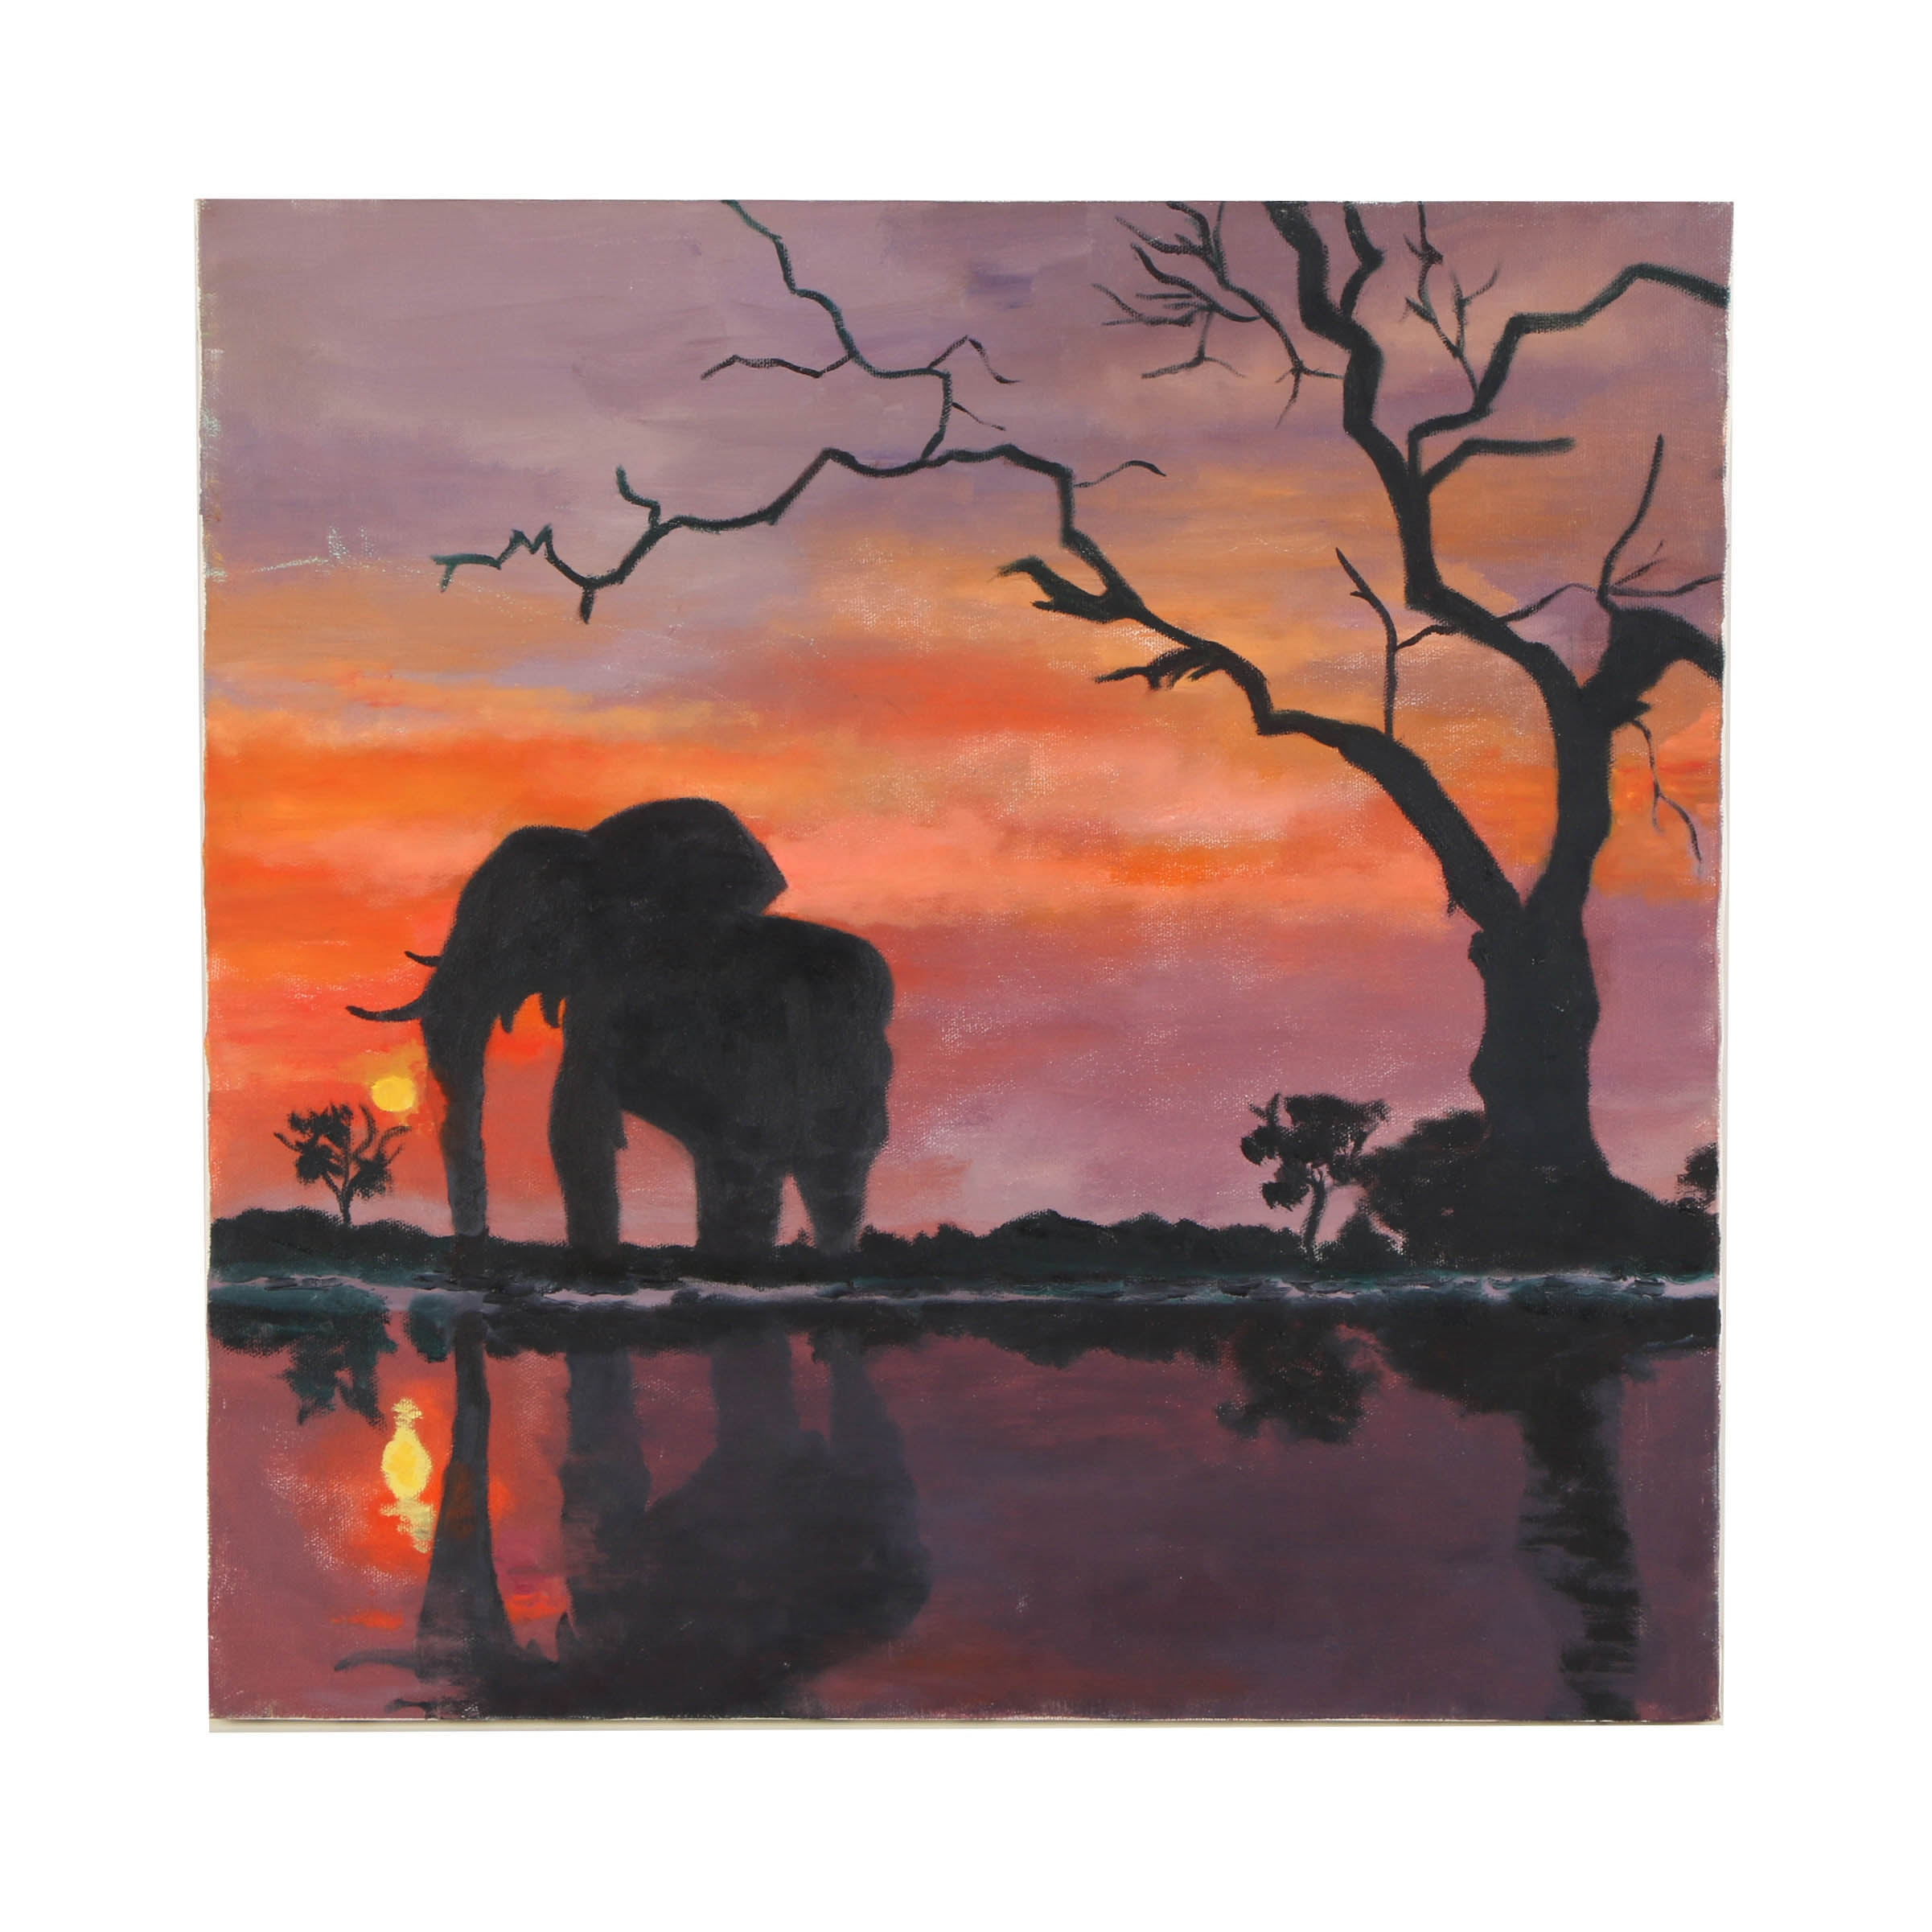 Wendy Lax Oil Painting on Canvas of a Silhouetted Elephant